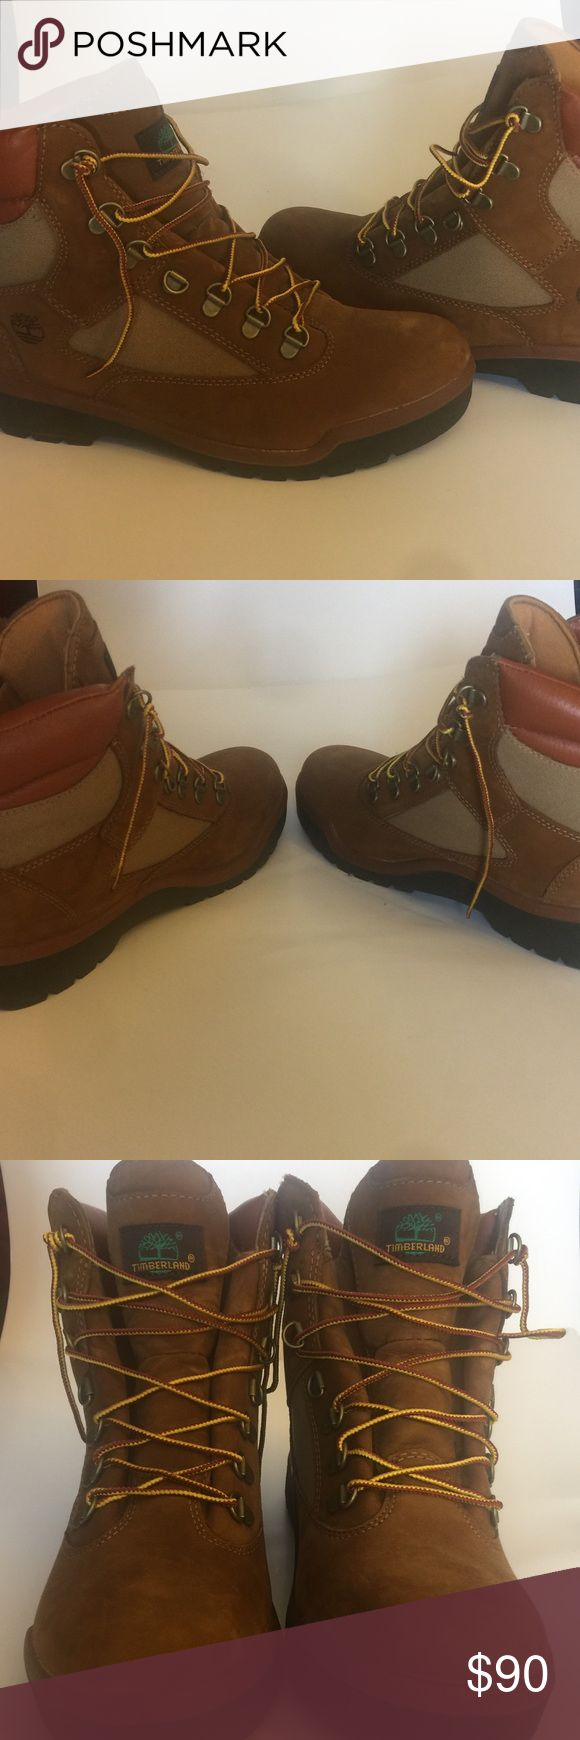 """Timberland 6"""" Nubuck Field Boots (Brown) Brand TIMBERLAND Heavy-duty chores call for the rugged durability of Timberland's Field boots. Seam-sealed waterproof construction keeps feet dry Timberland Shoes Boots"""